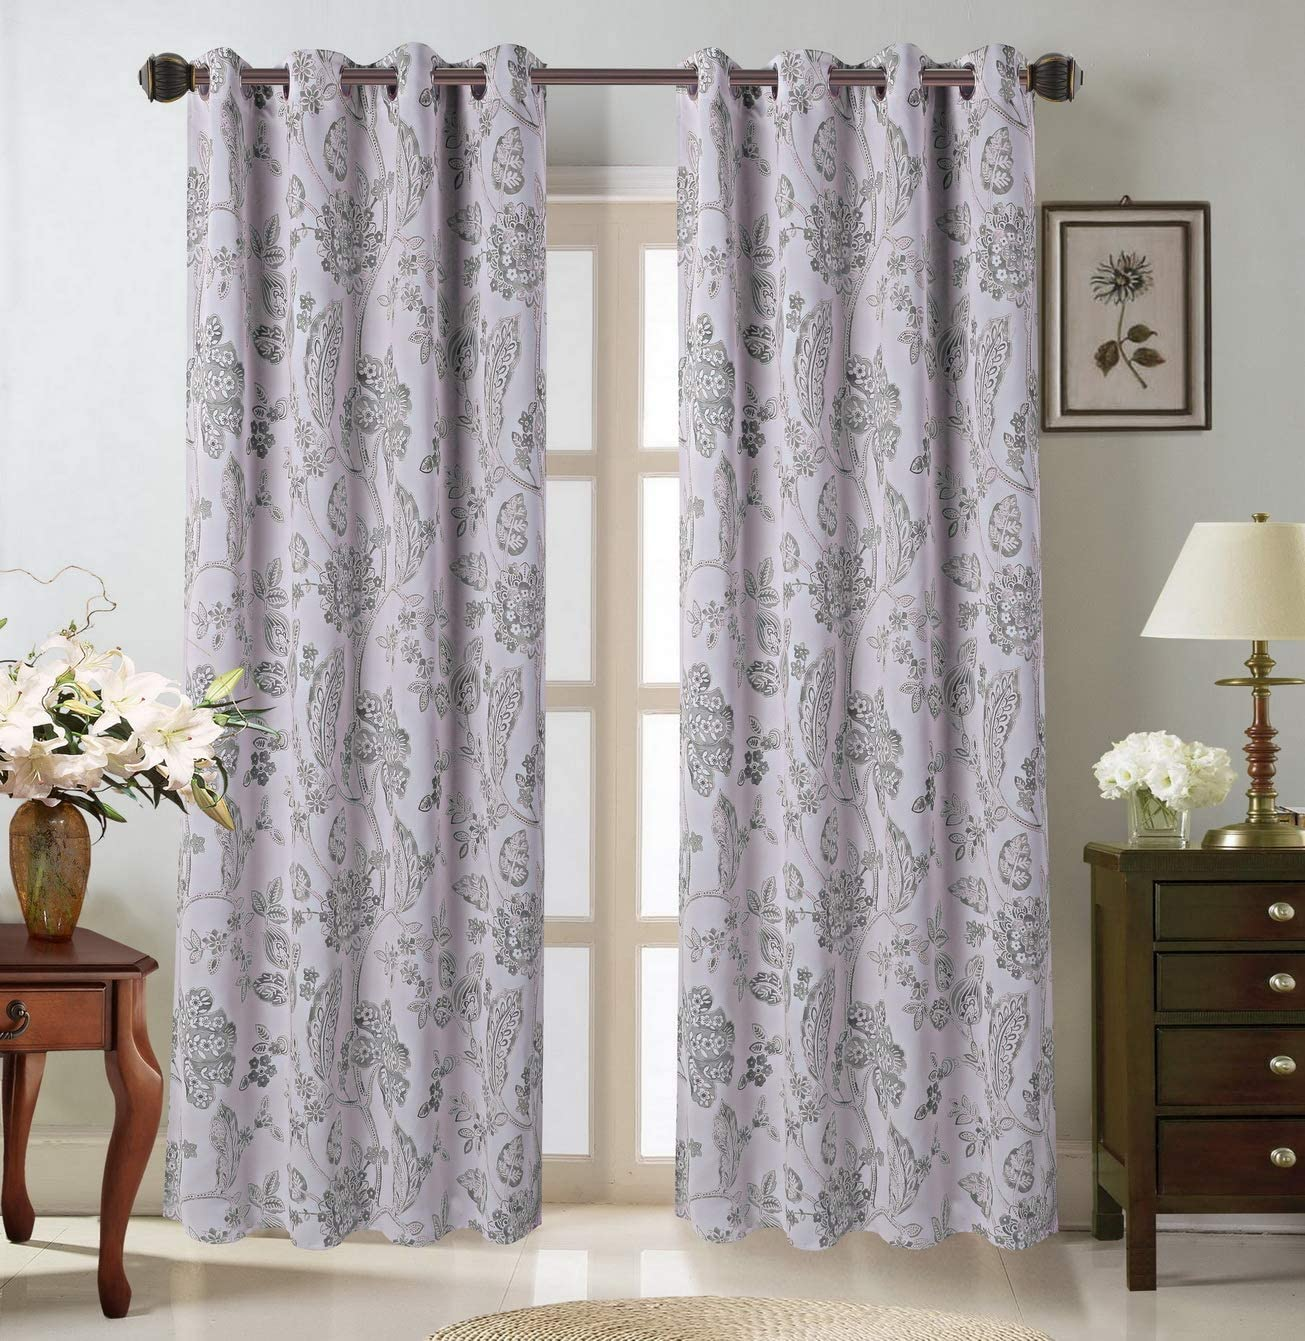 Comfy Home Furnishings 2 Piece Hotel Quality Printed Blackout Thermal Insulated Window Curtain Set Floral, Silver, 55 X 84